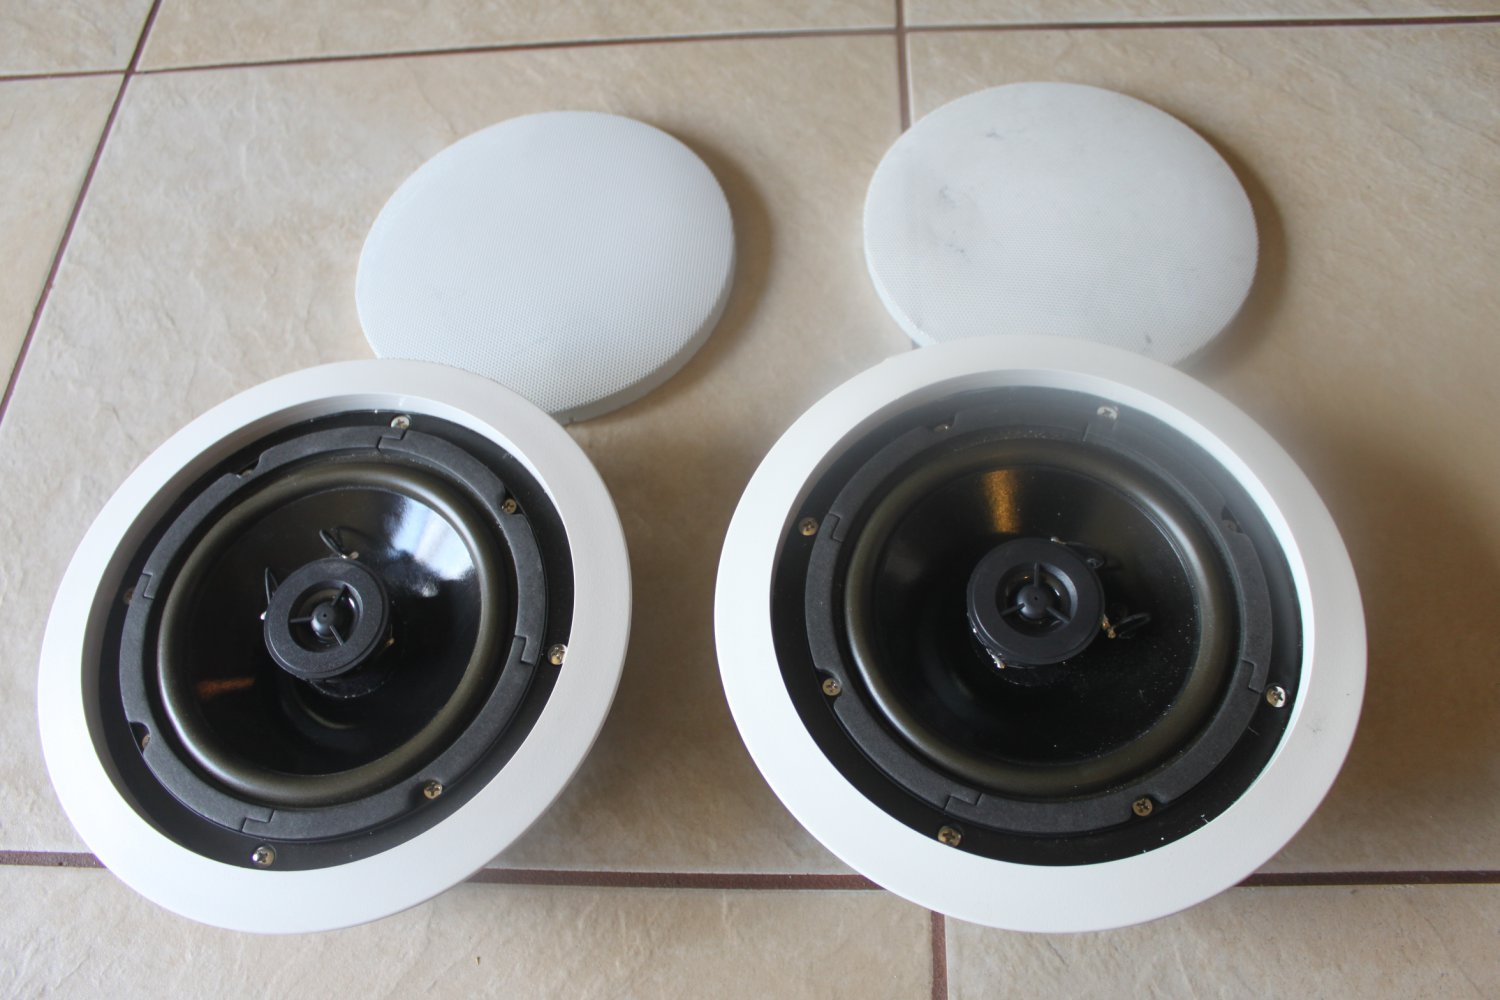 "OWI IC6 70V10 6.5"" 70 Volts 10 Watts In-Ceiling Speaker white clean 2 each"